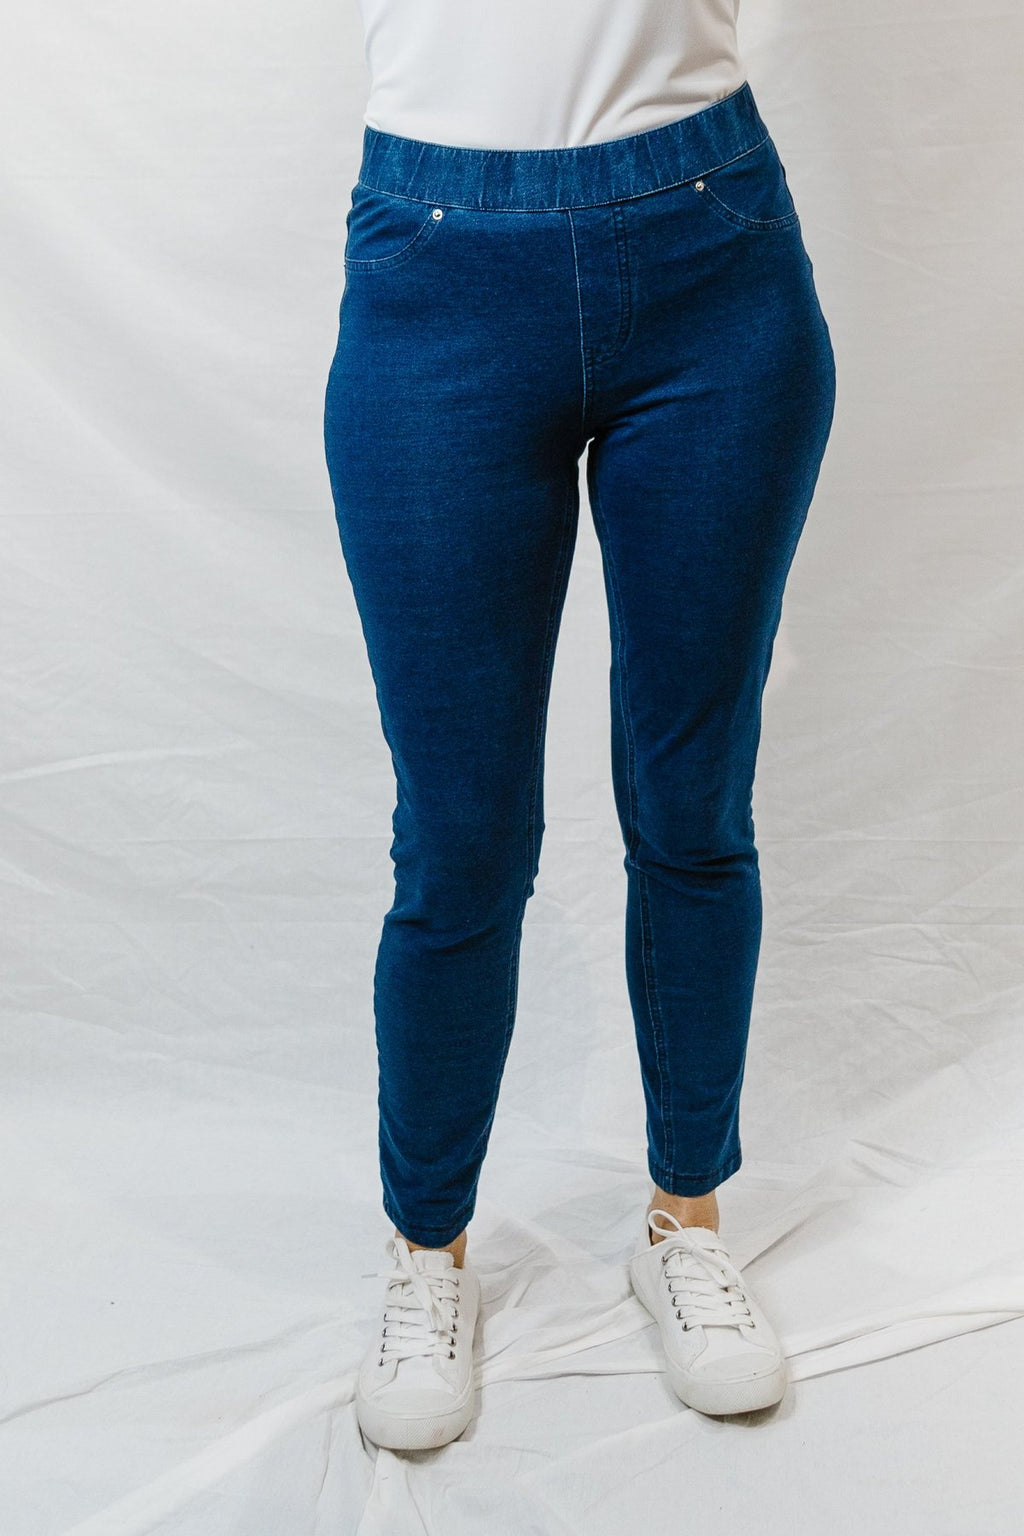 Goondiwindi Cotton Indigo Knit Jeggings